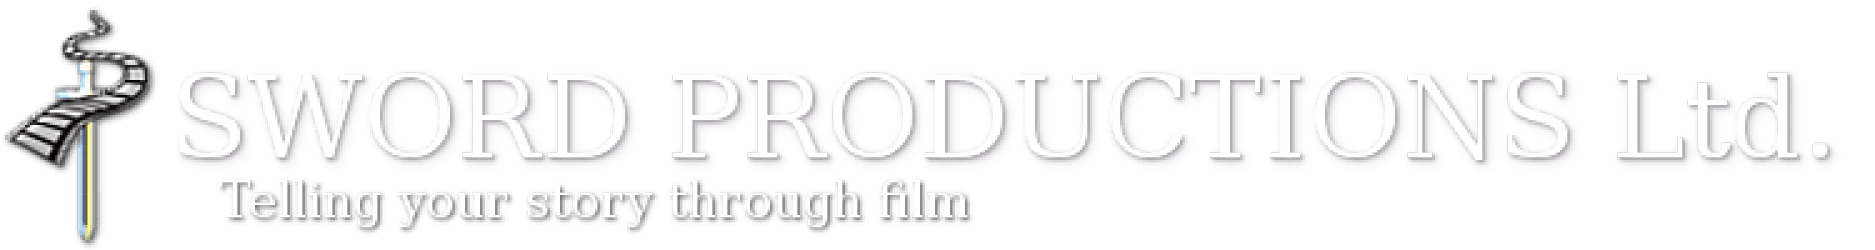 Sword Productions Ltd